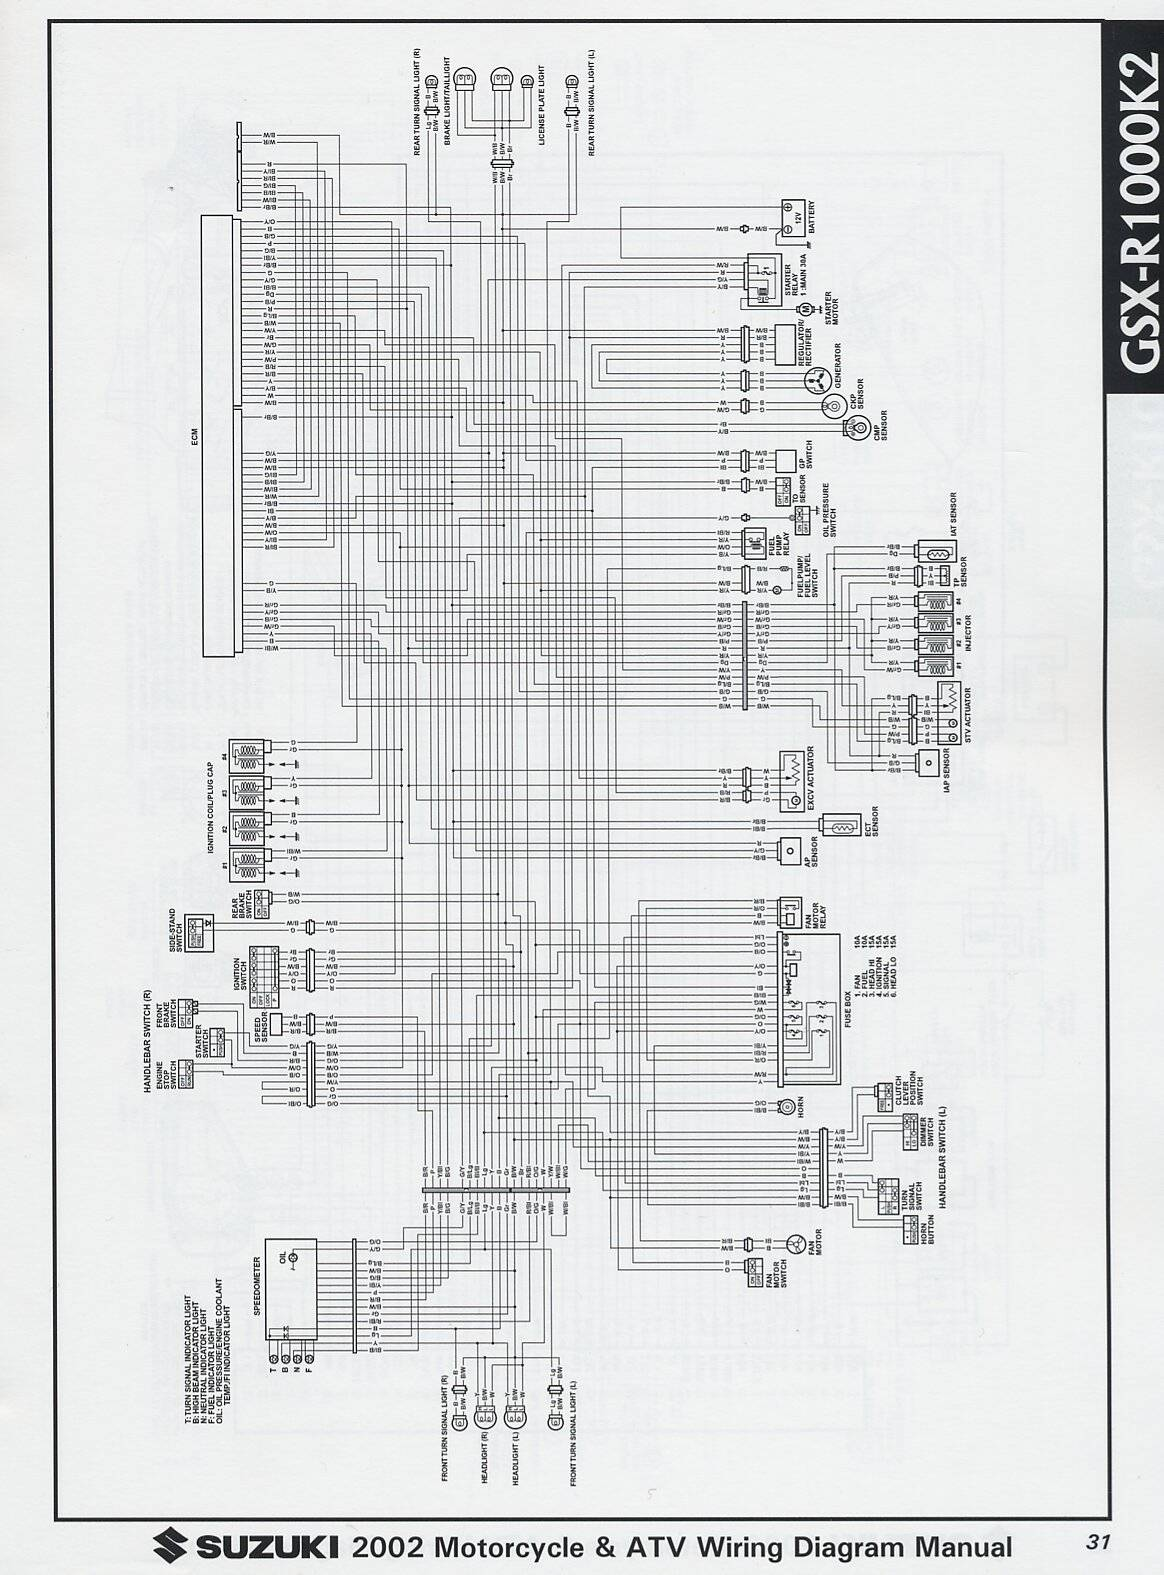 Cute 97 dodge neon wiring diagram ideas electrical circuit diagram delighted 2002 dodge neon wiring diagram photos wiring diagram publicscrutiny Choice Image